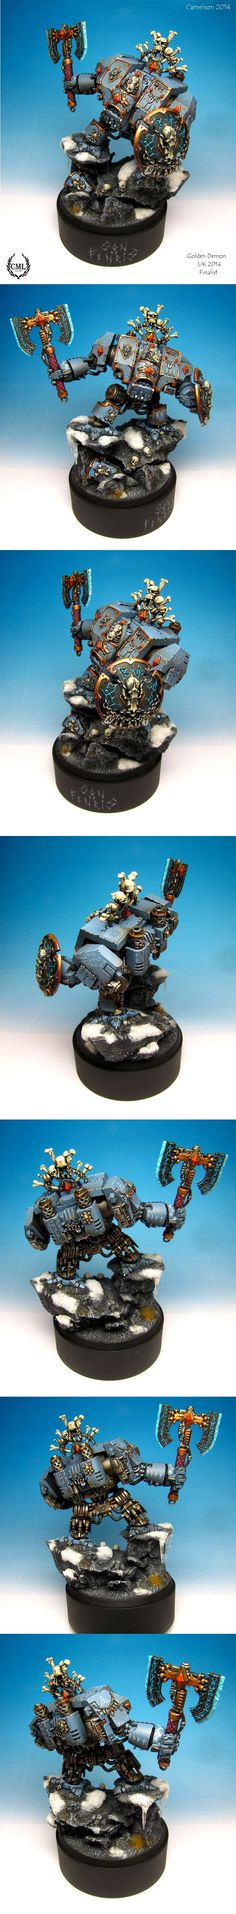 40k - Space Wolves Dreadnought by camelson